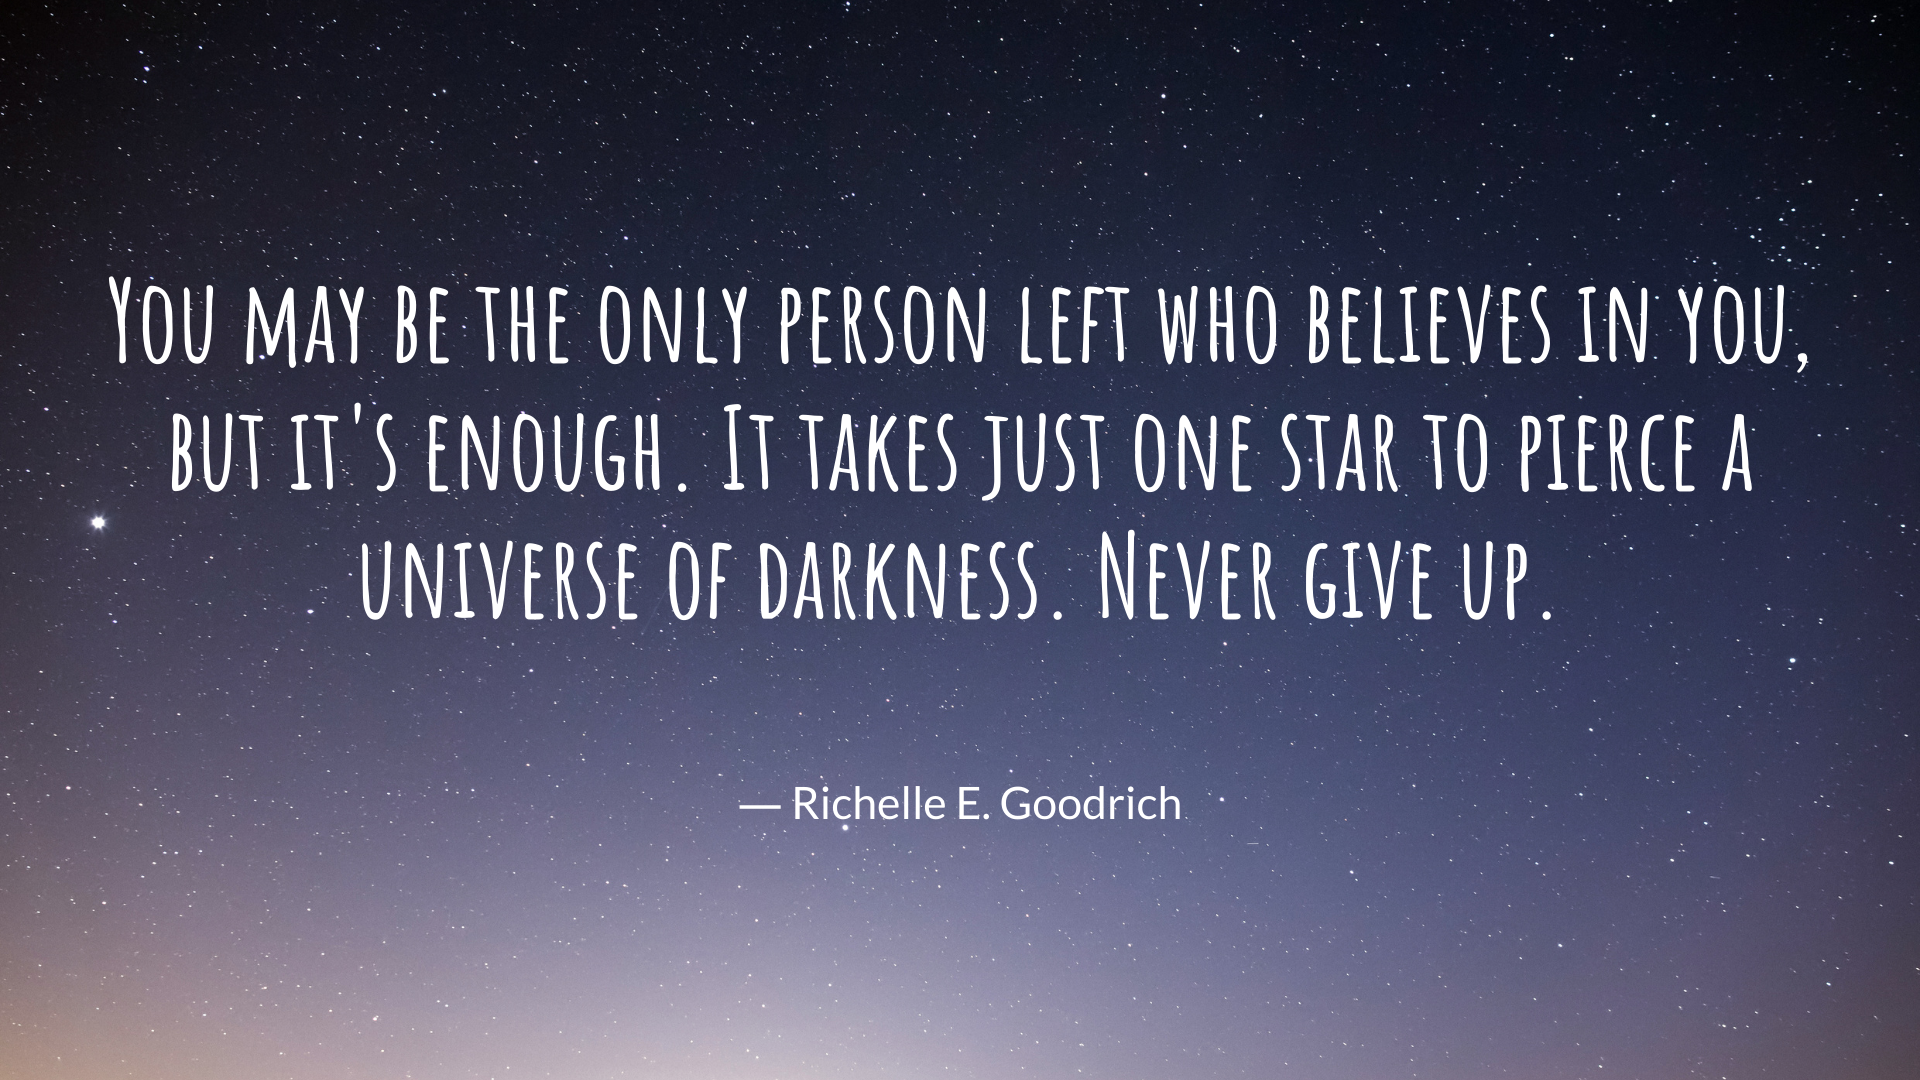 You may be the only person left who believes in you, but it's enough. It takes just one star to pierce a universe of darkness. Never give up. – Richelle E. Goodrich[1920×1080][OC]